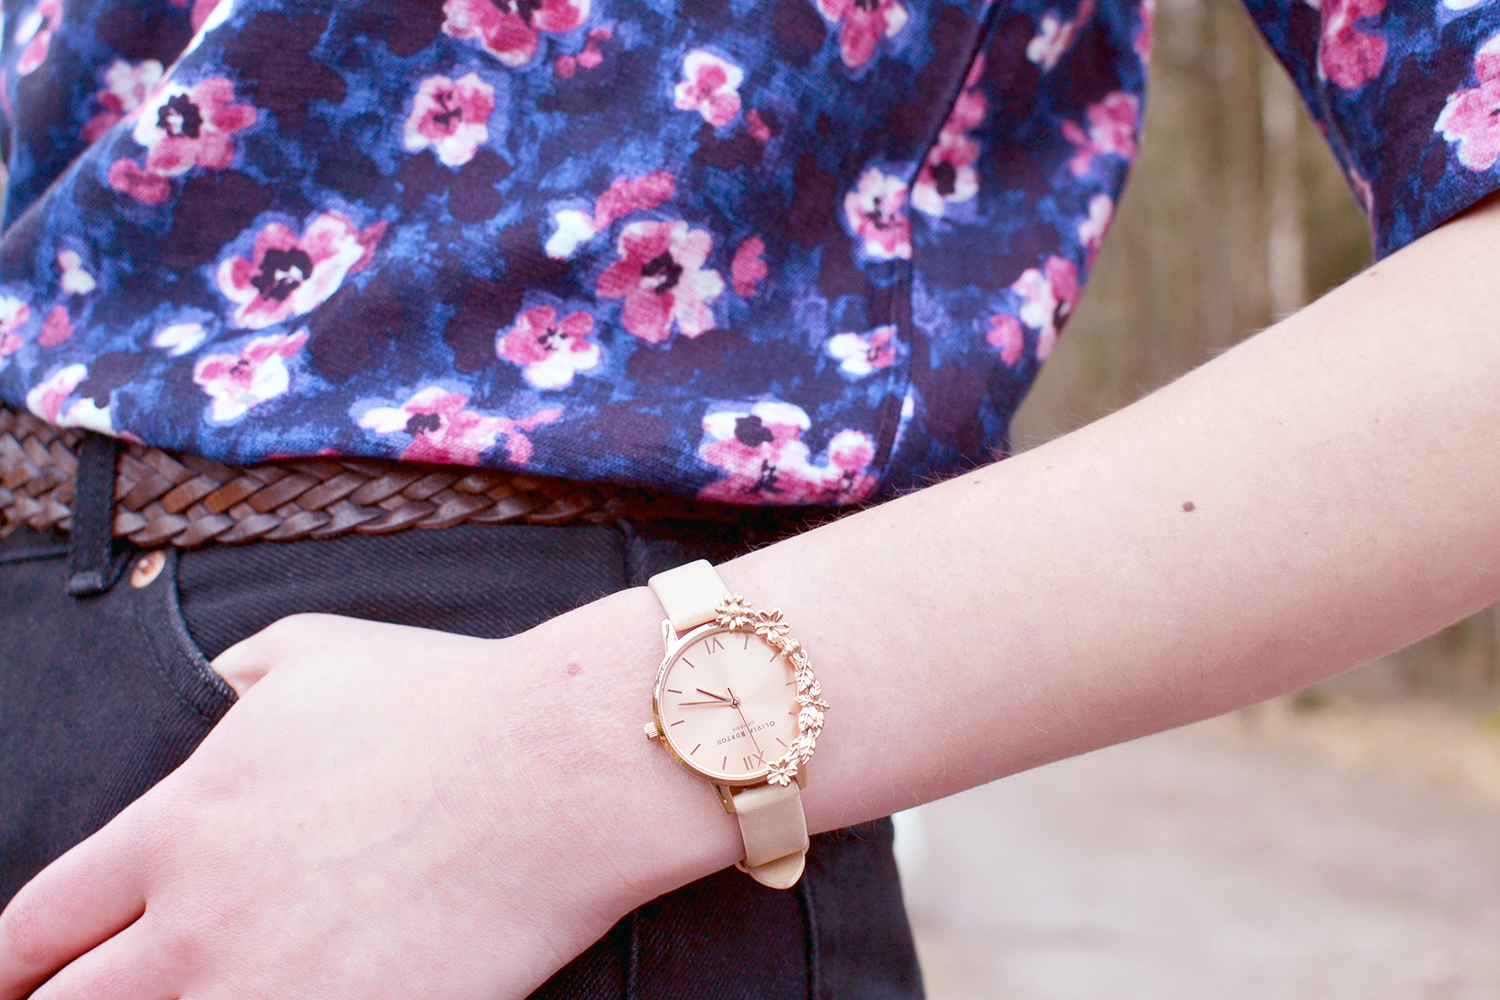 Retromantisch who's that girl wow to go top floral monki metallic bag taiki mom jeans olivia burton watch pink rose gold